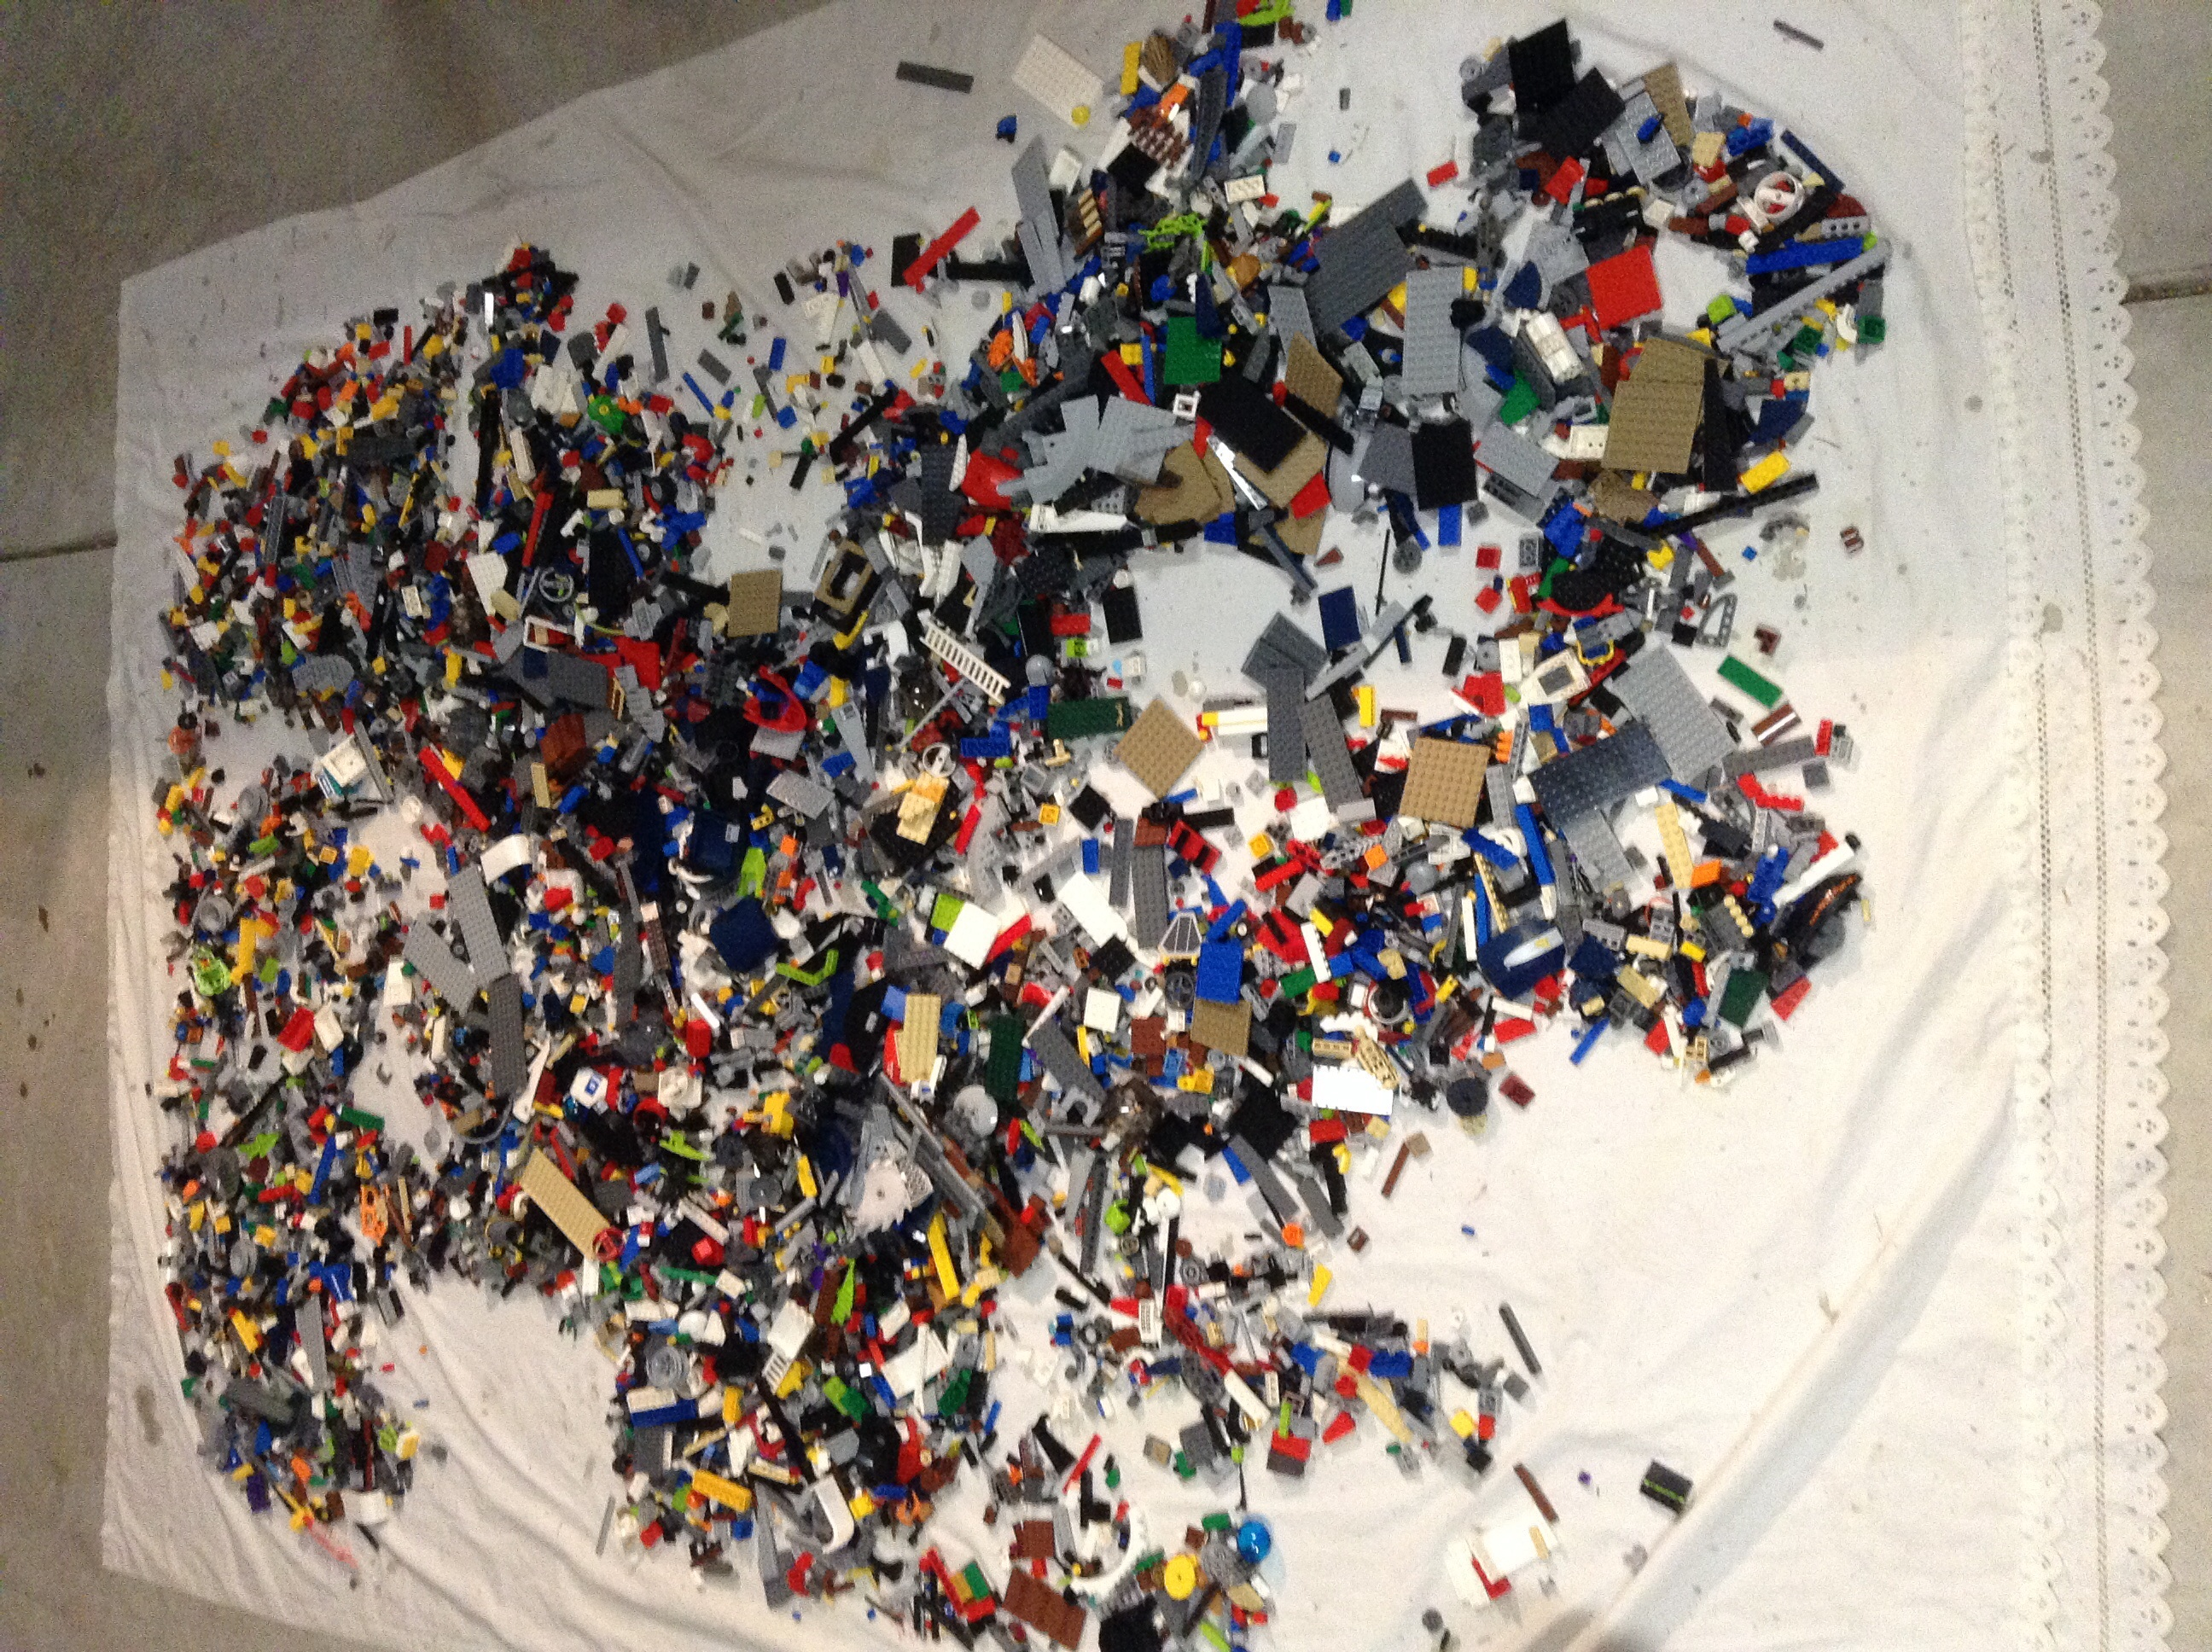 Sale On Legos The Life And Times Of A Bulk Lego Lot Community Lego Blogs